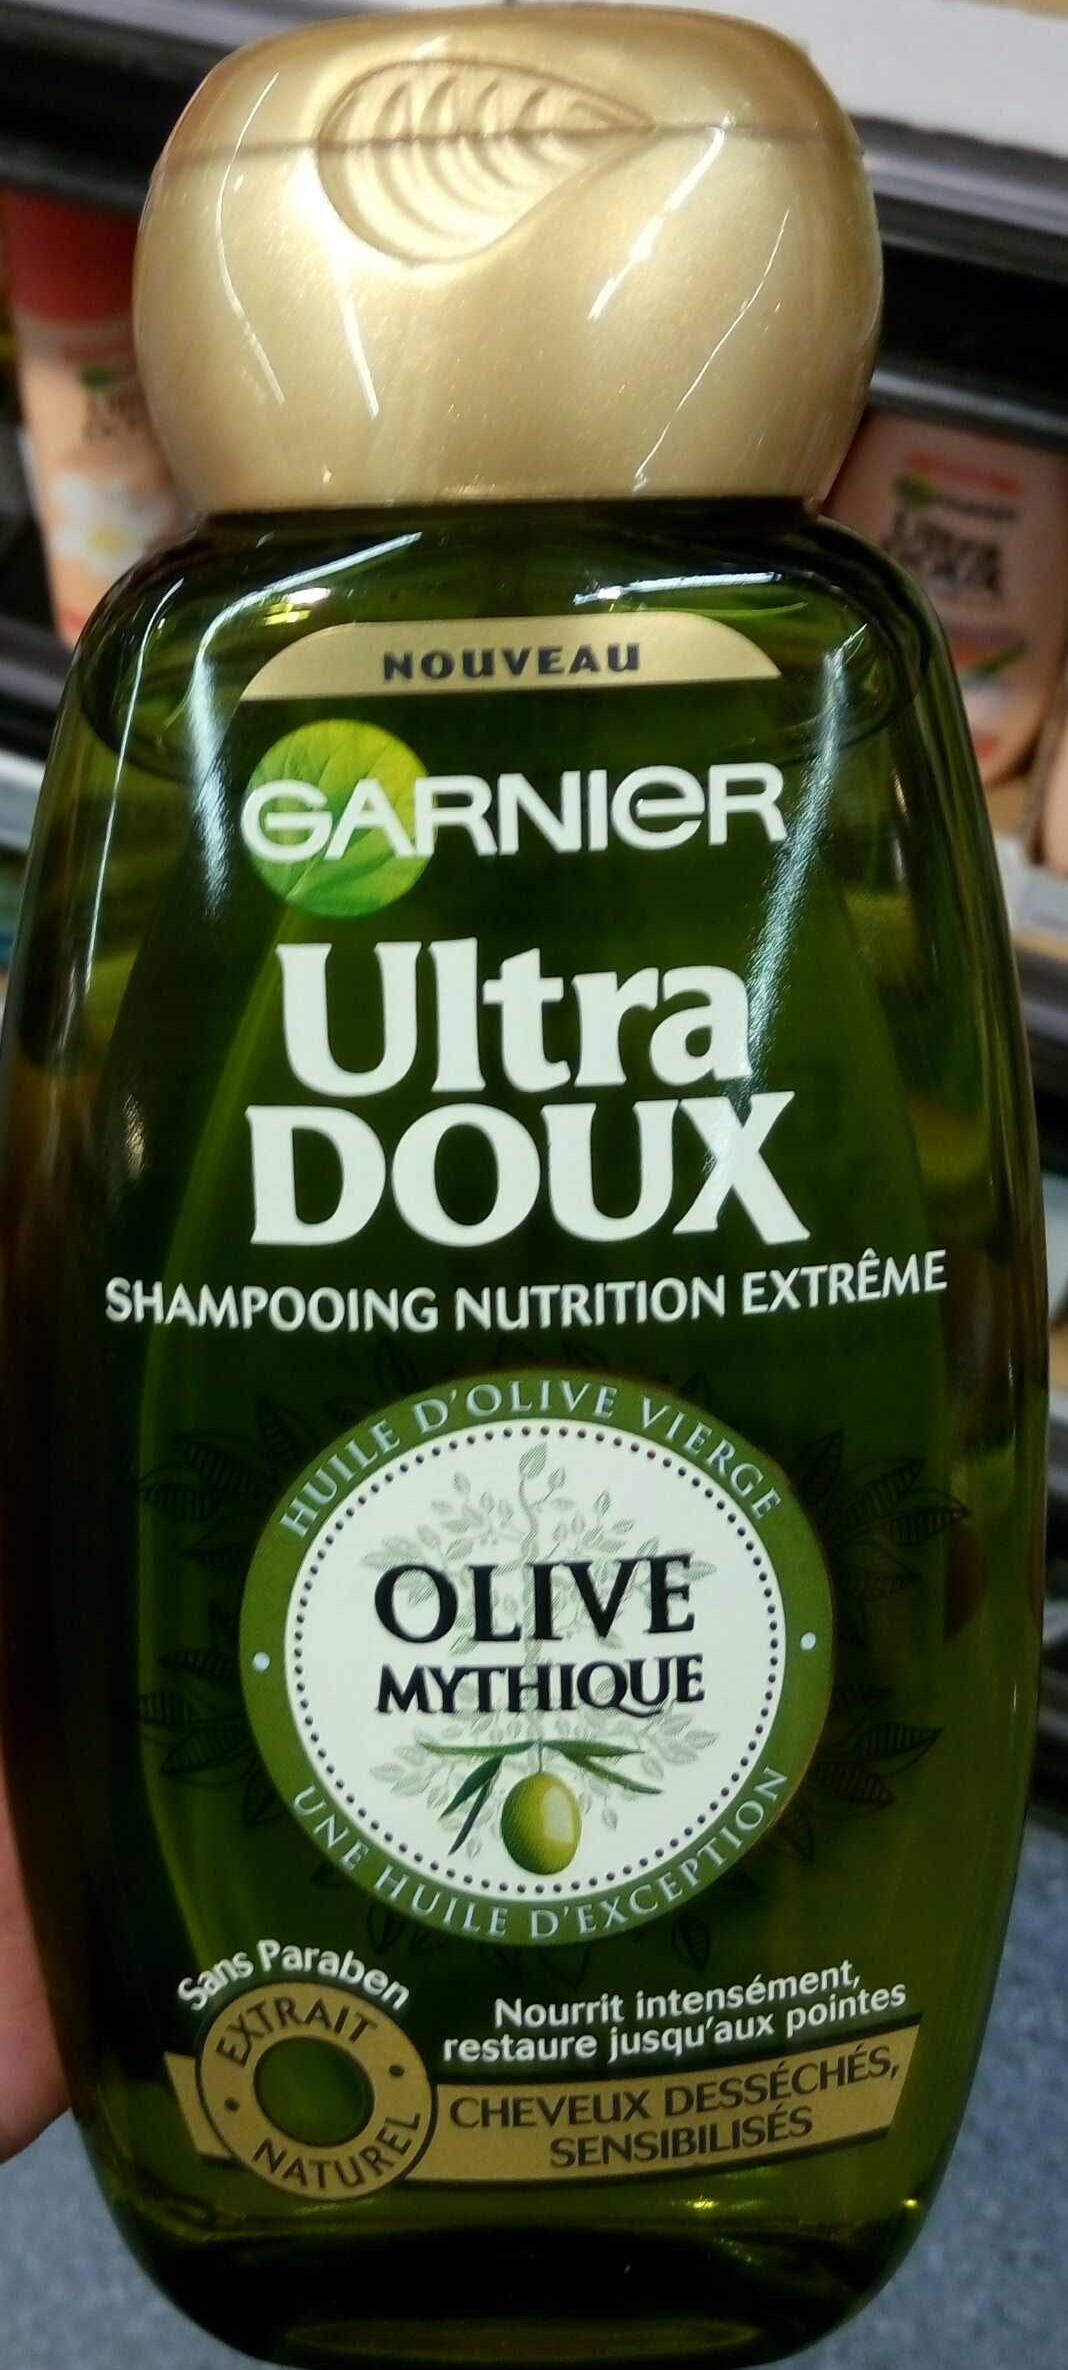 Ultra Doux Shampooing nutrition extrême Olive Mythique - Product - fr